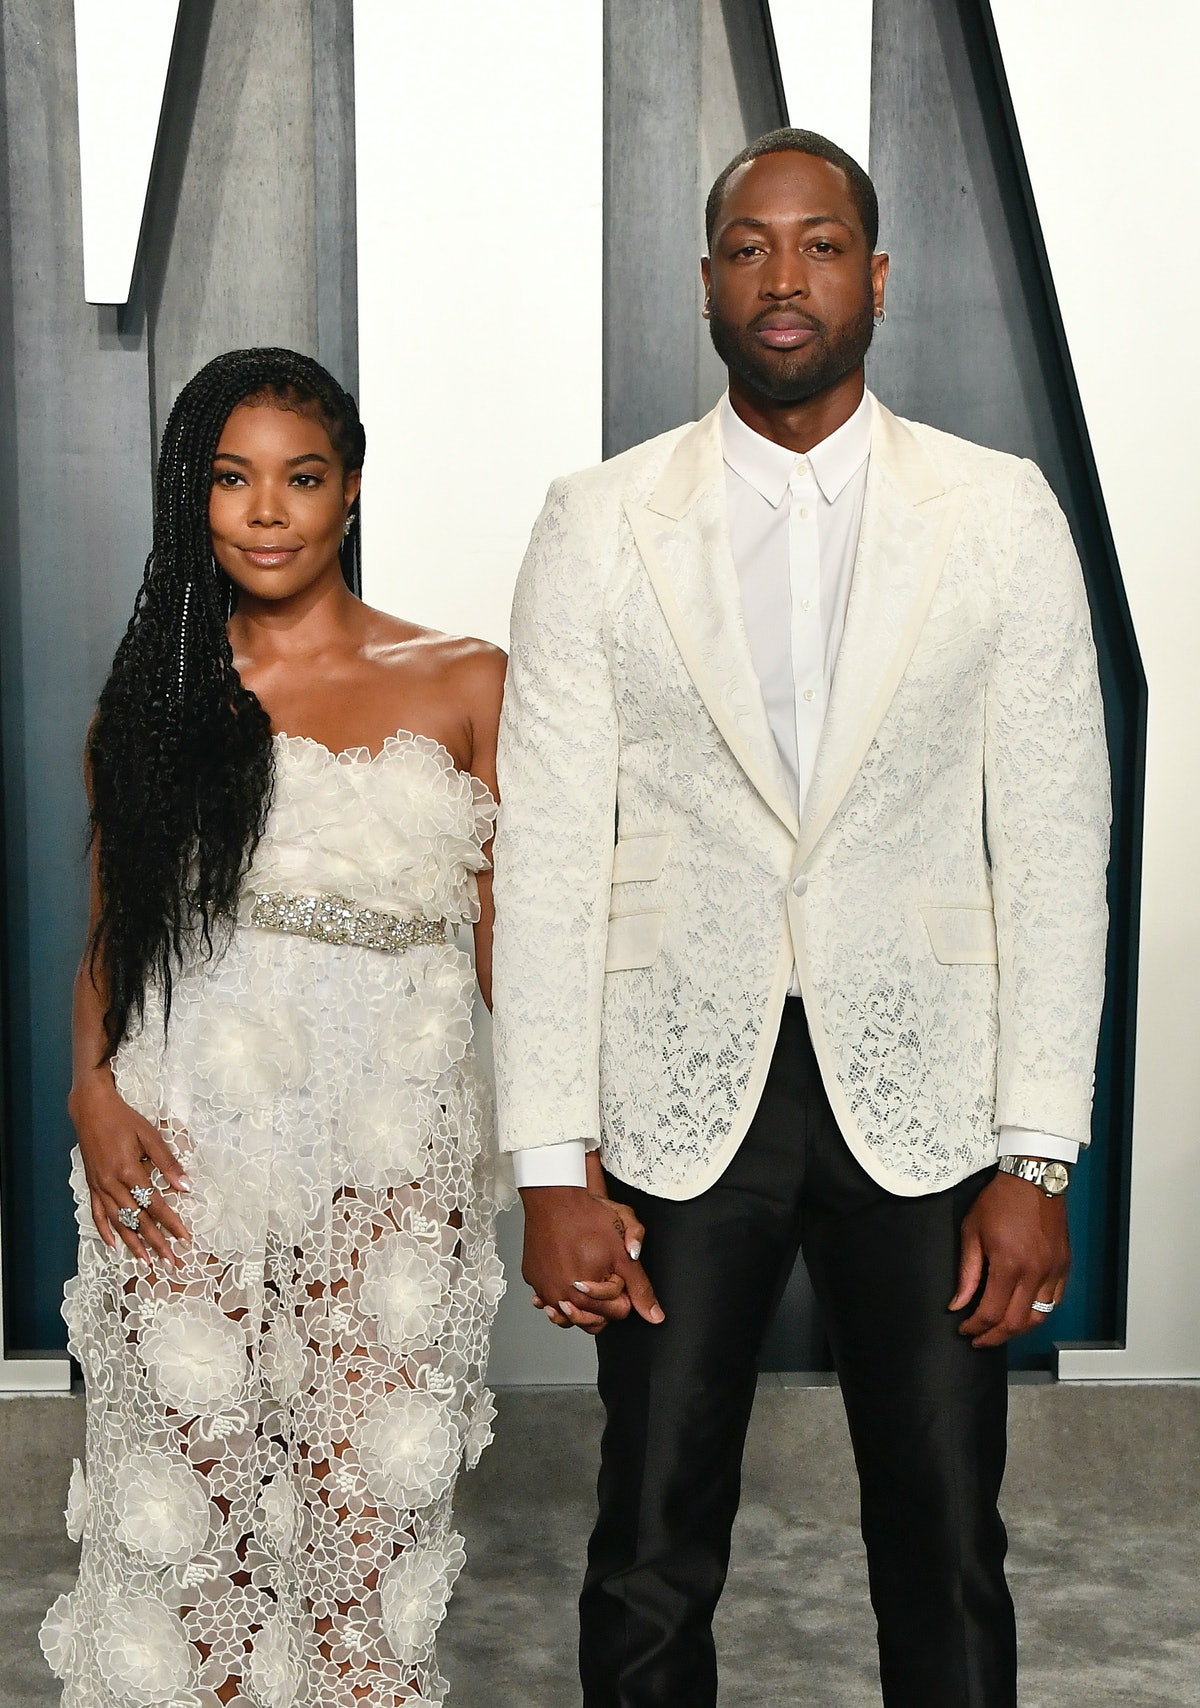 BEVERLY HILLS, CALIFORNIA - FEBRUARY 09: (L-R) Gabrielle Union and Dwyane Wade attend the 2020 Vanit...